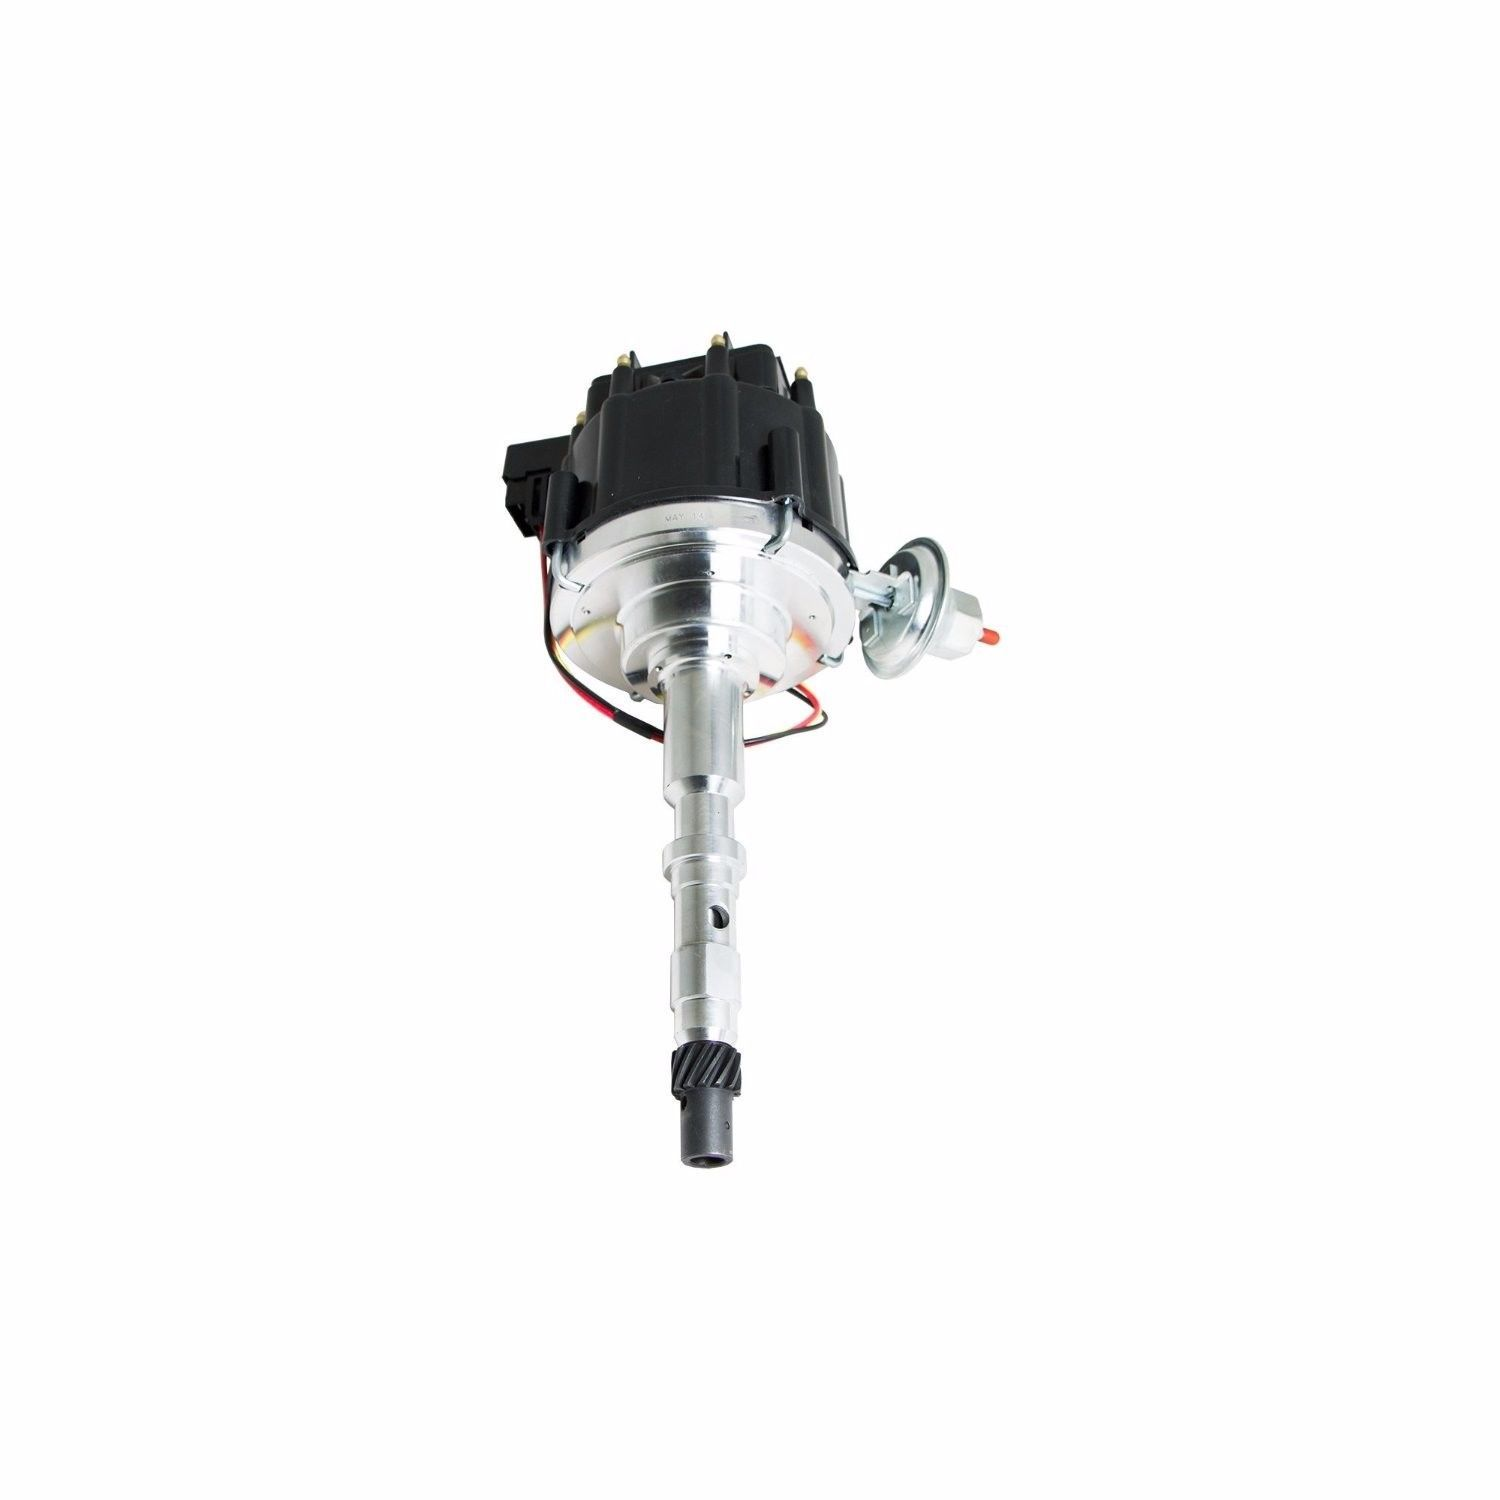 Amc Jeep Cj5 Cj7 304 360 401 V 8 Hei Distributor Black 65k